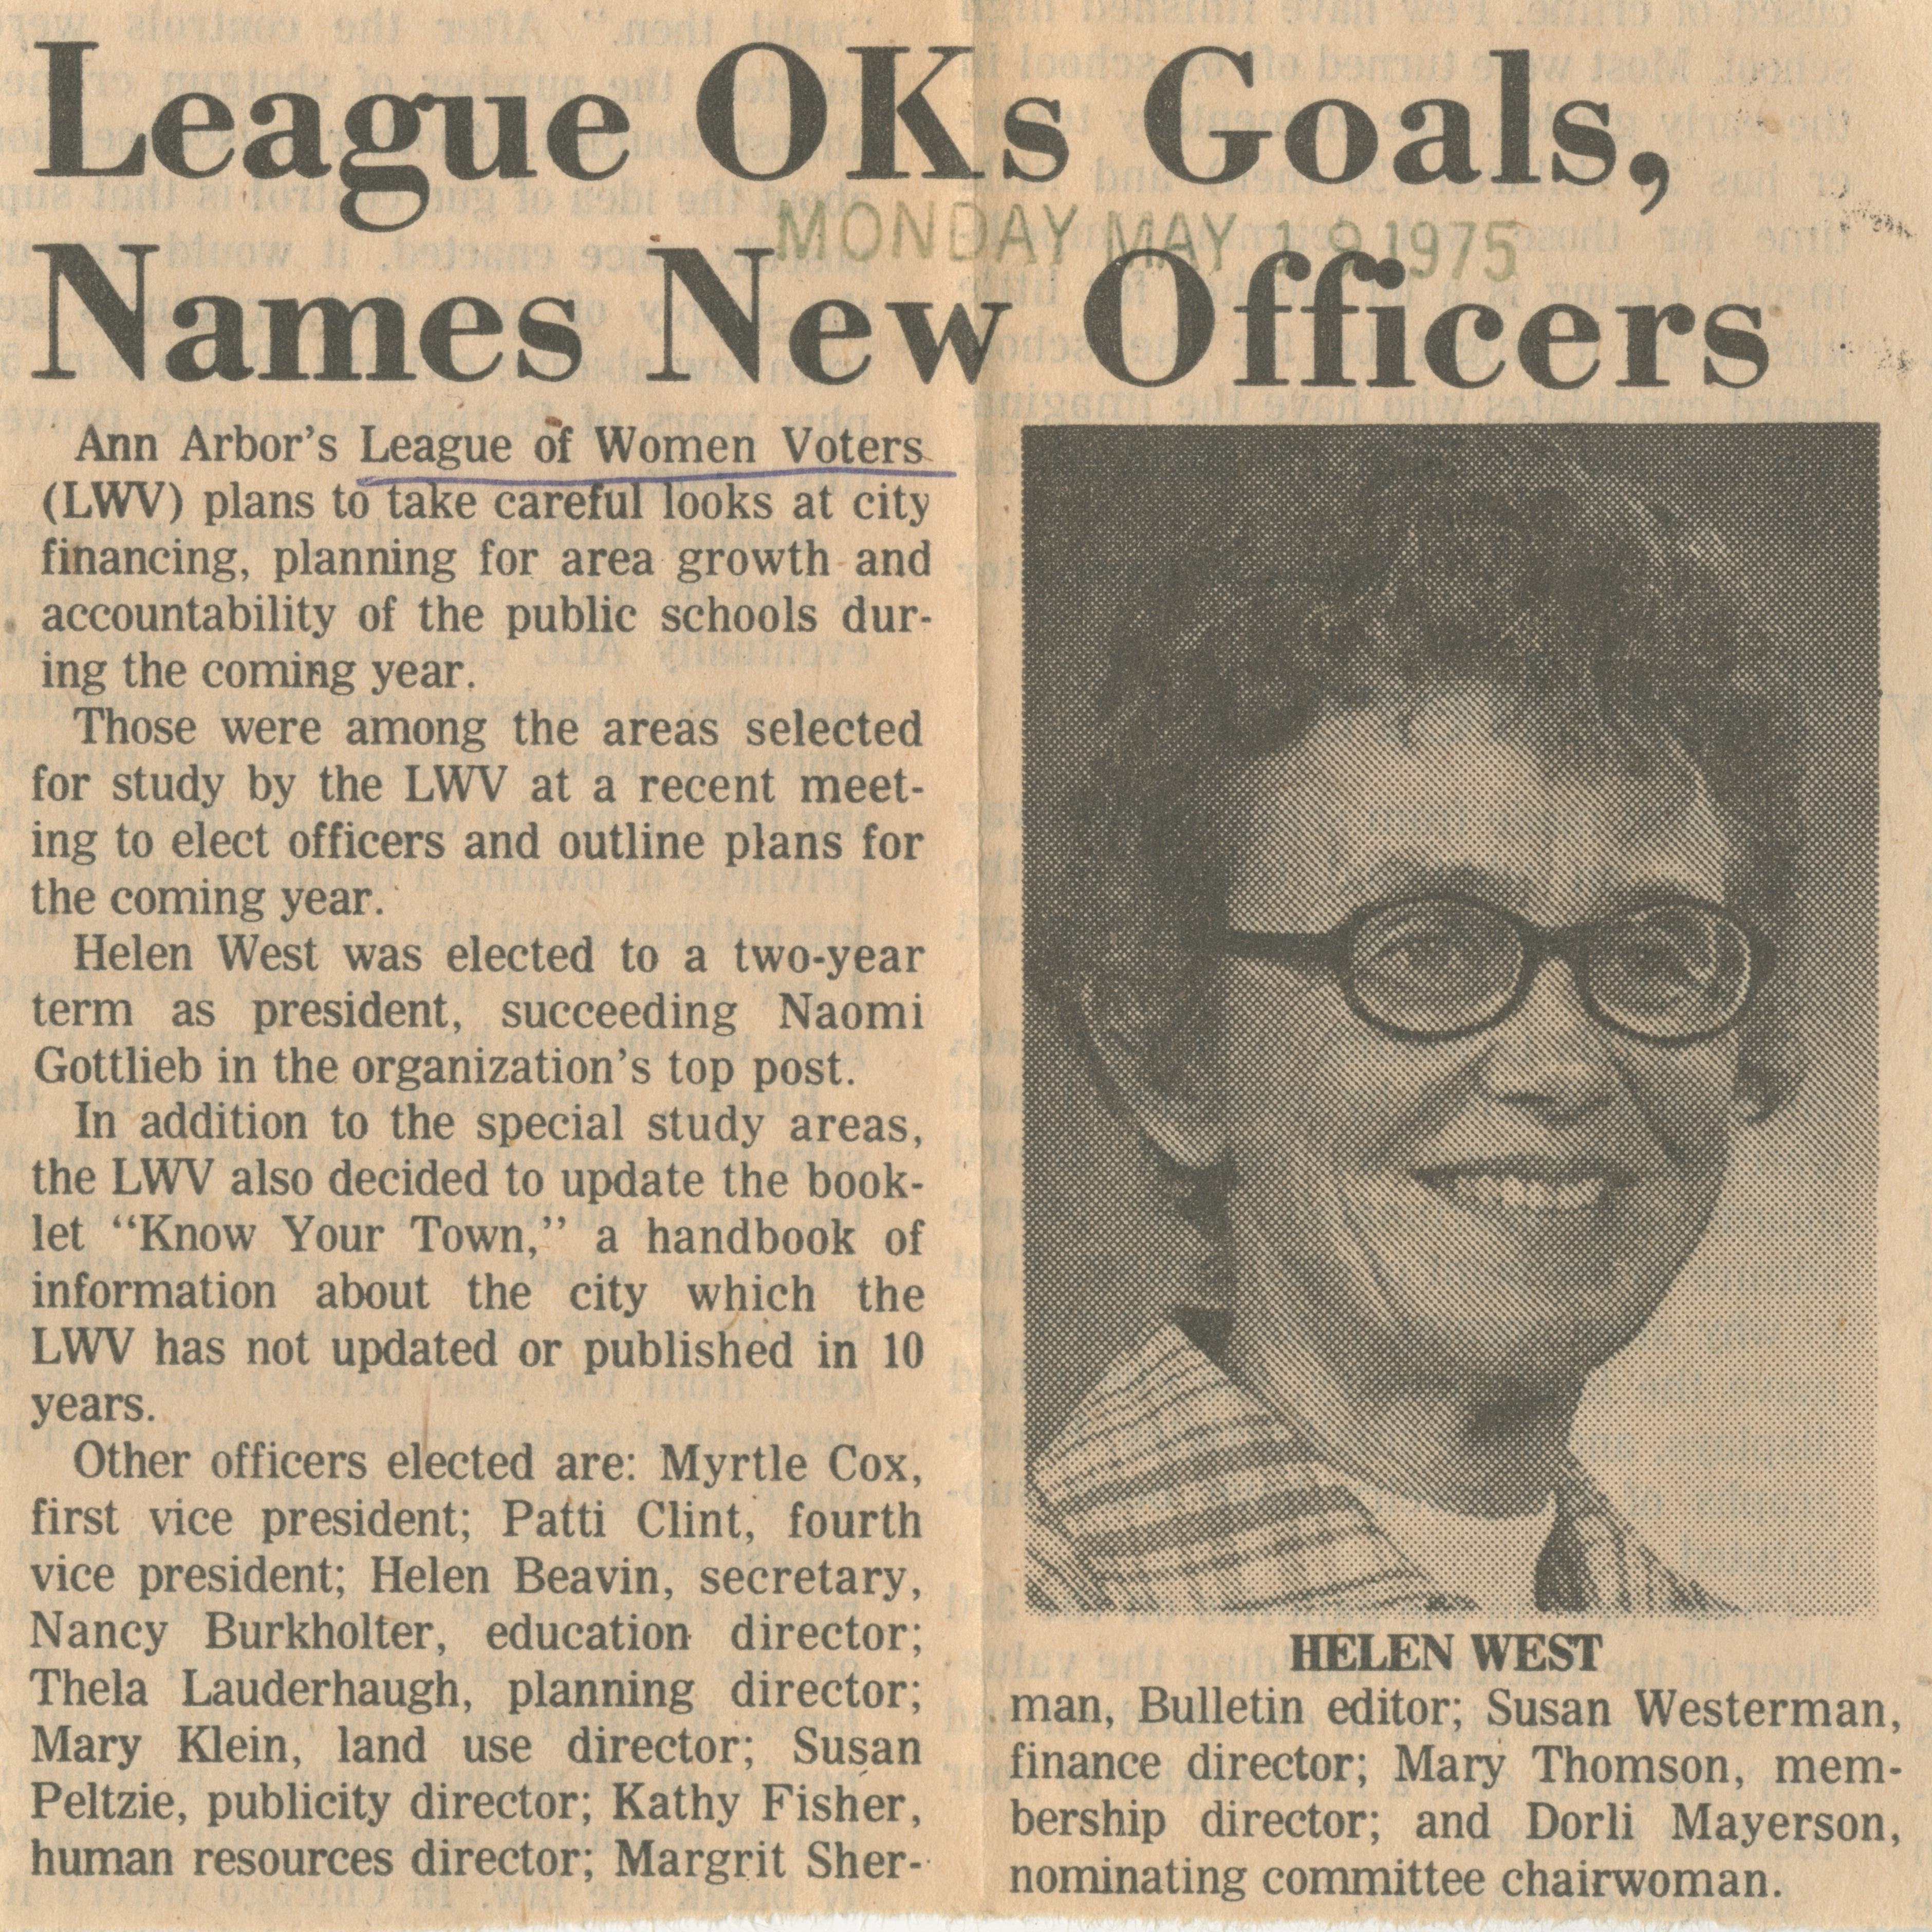 League OKs Goals, Names New Officers image